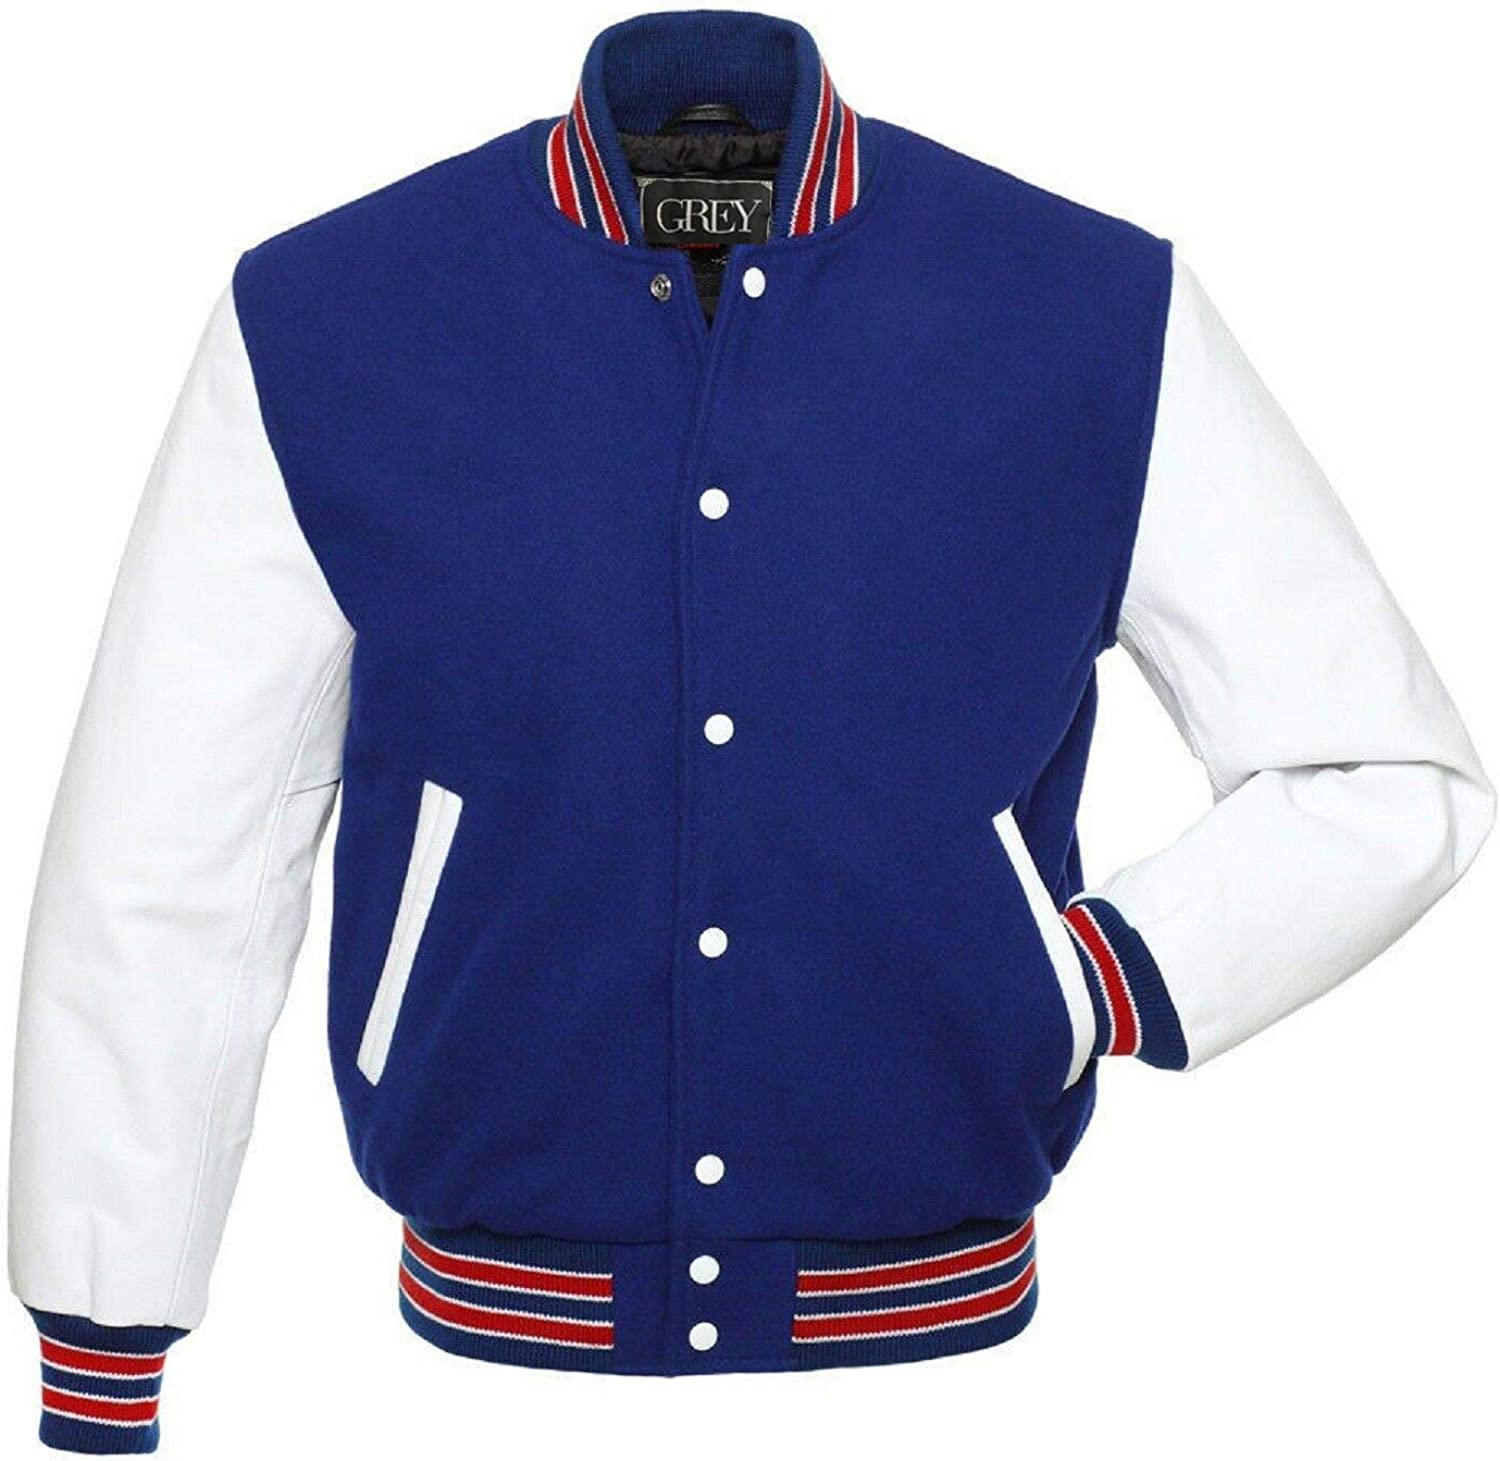 GREY Brand Varsity Jacket, Wool Body with Leather Arms Letterman Baseball Unique & Stylish (7XL) (XS, Royal Blue-White/Red Strips) (XS, Royal White-Red Strips)